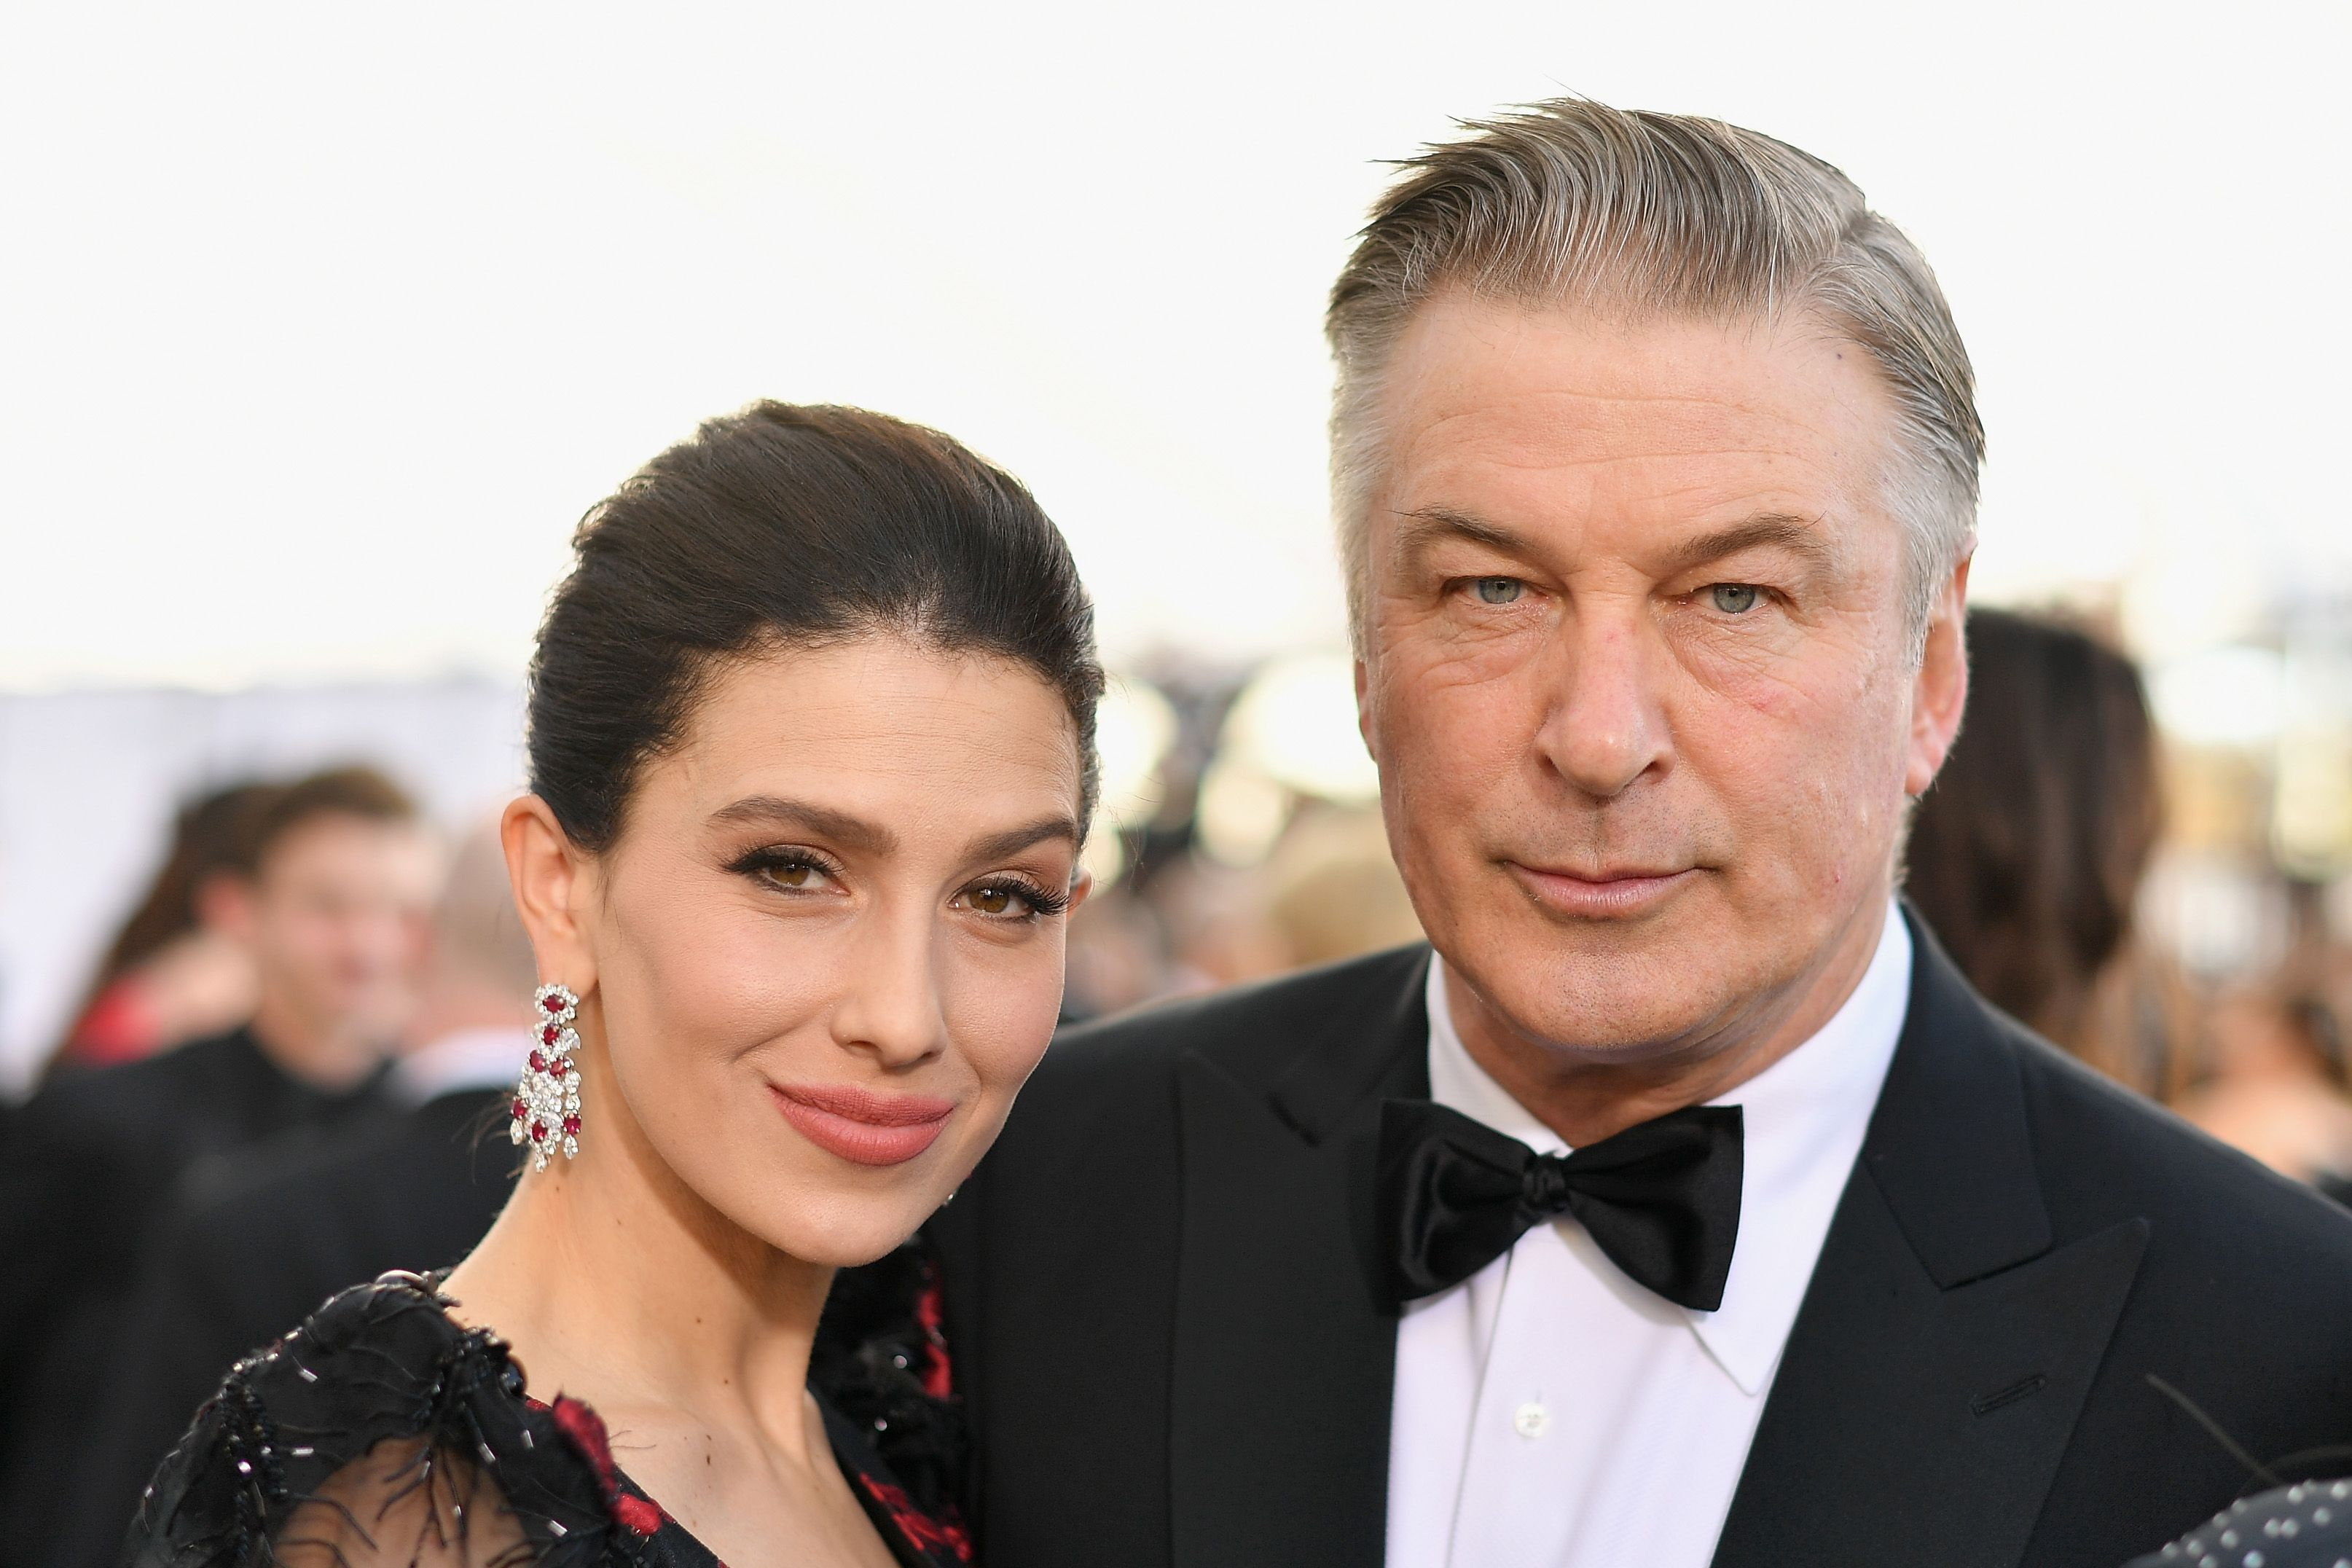 Hilaria and Alec Baldwin at the 25th Annual Screen ActorsGuild Awards in January 2019 in Los Angeles   Source: Getty Images